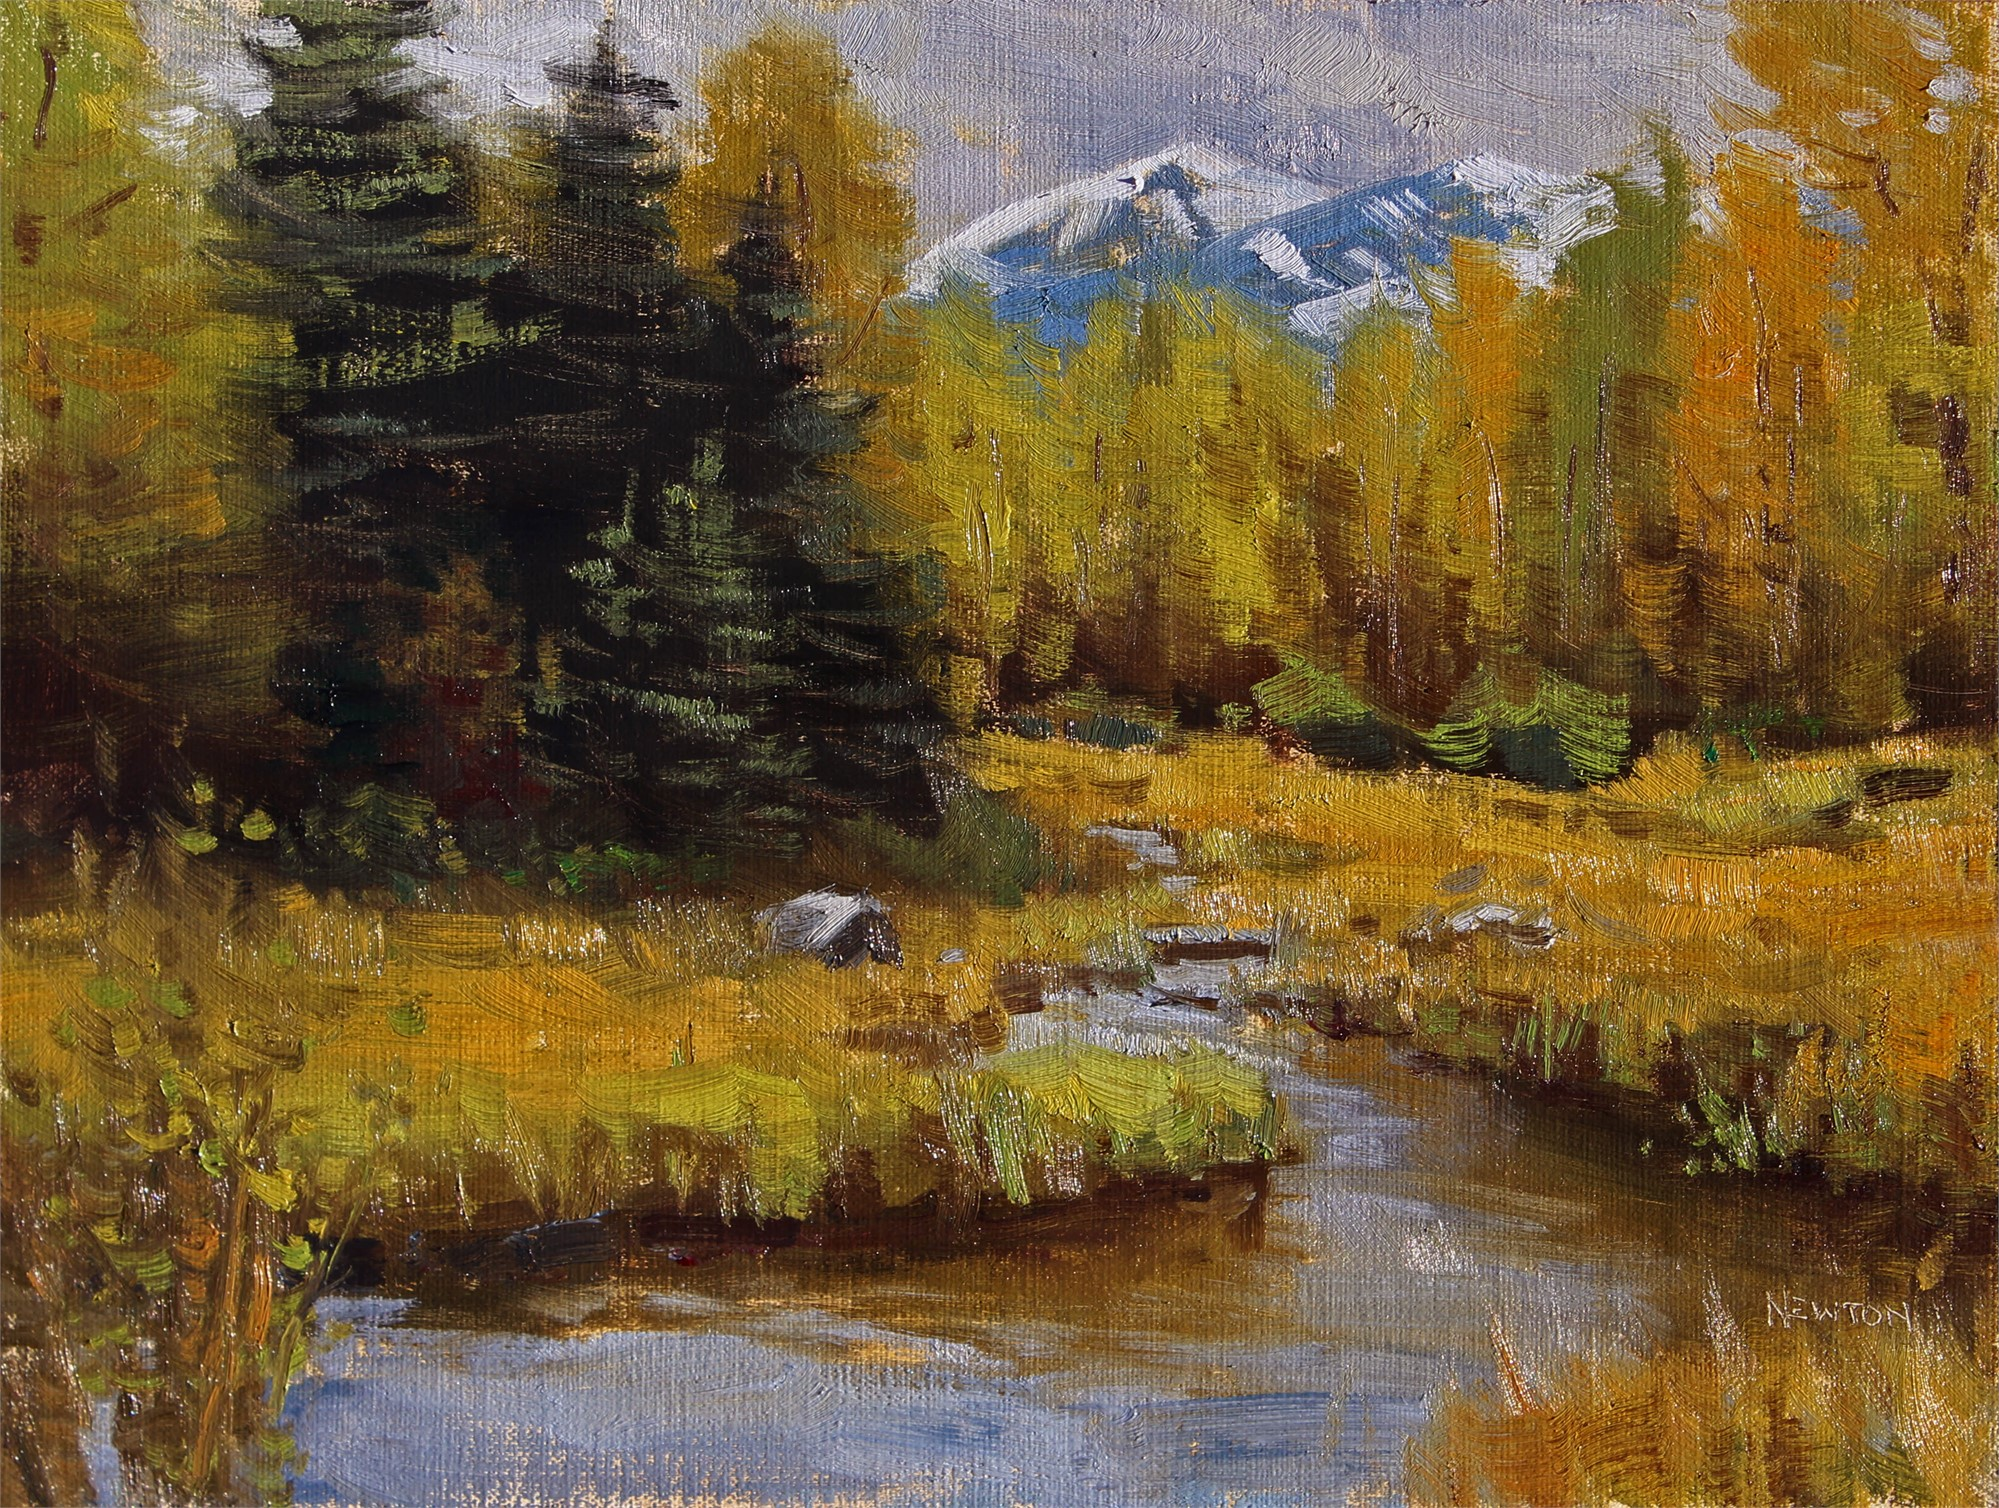 Touch of Autumn by Wes Newton